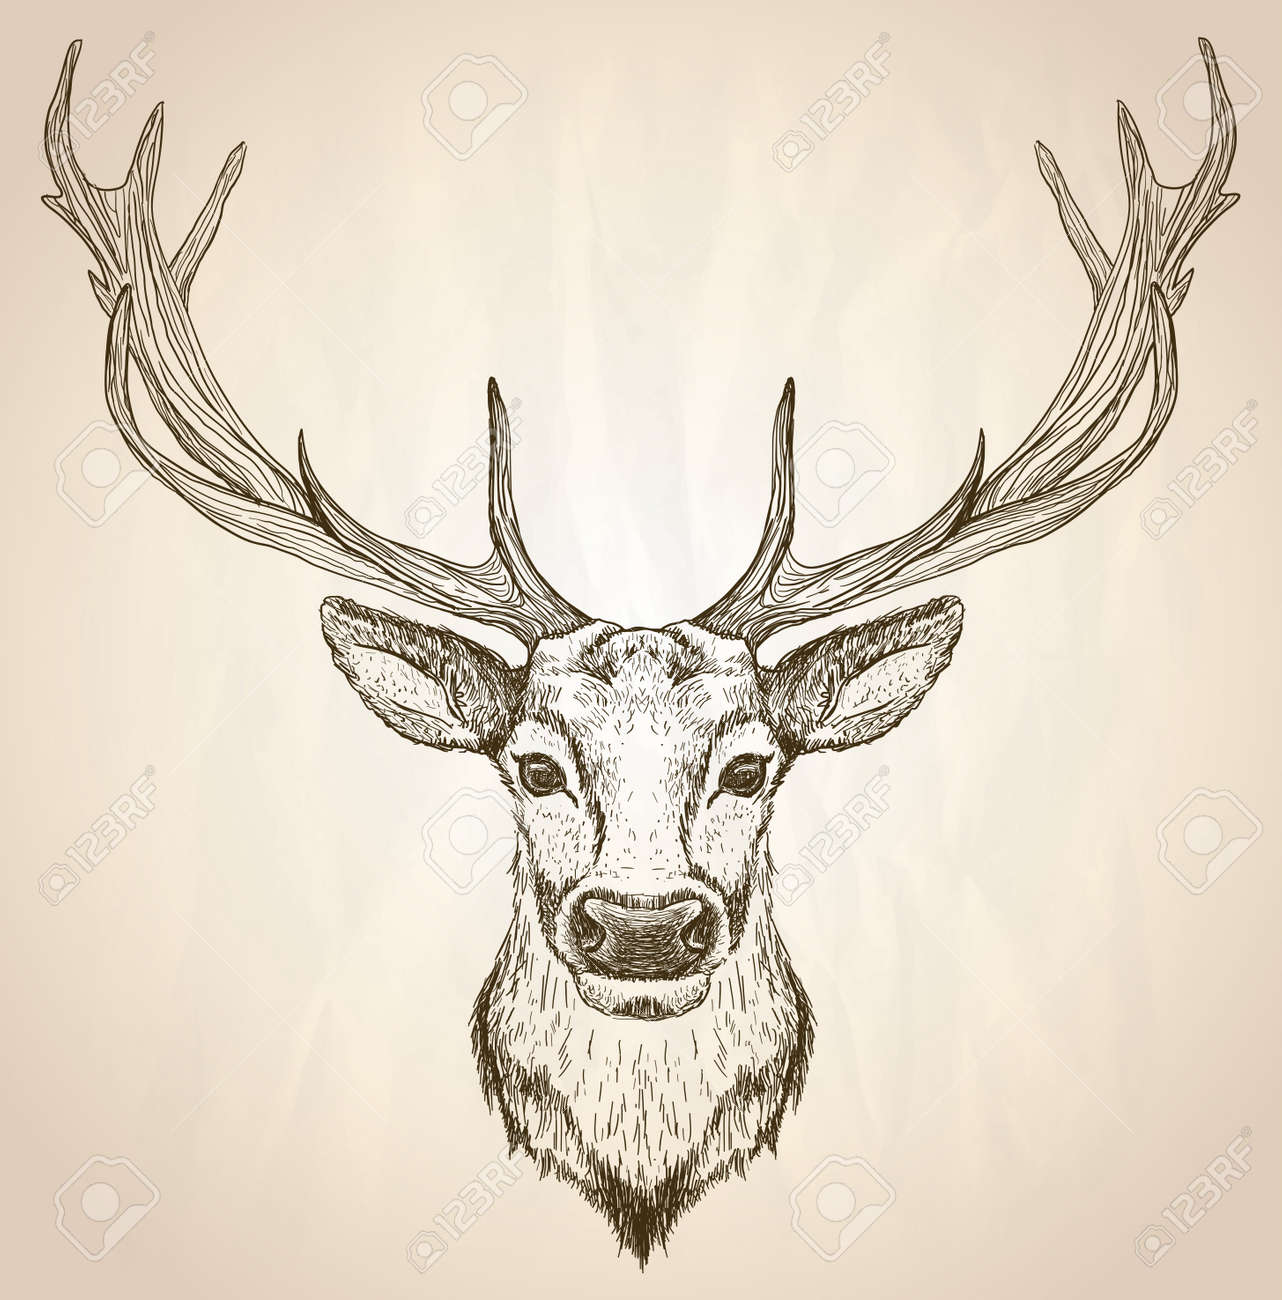 Hand drawn graphic sketch illustration of a deer head with big antlers front view